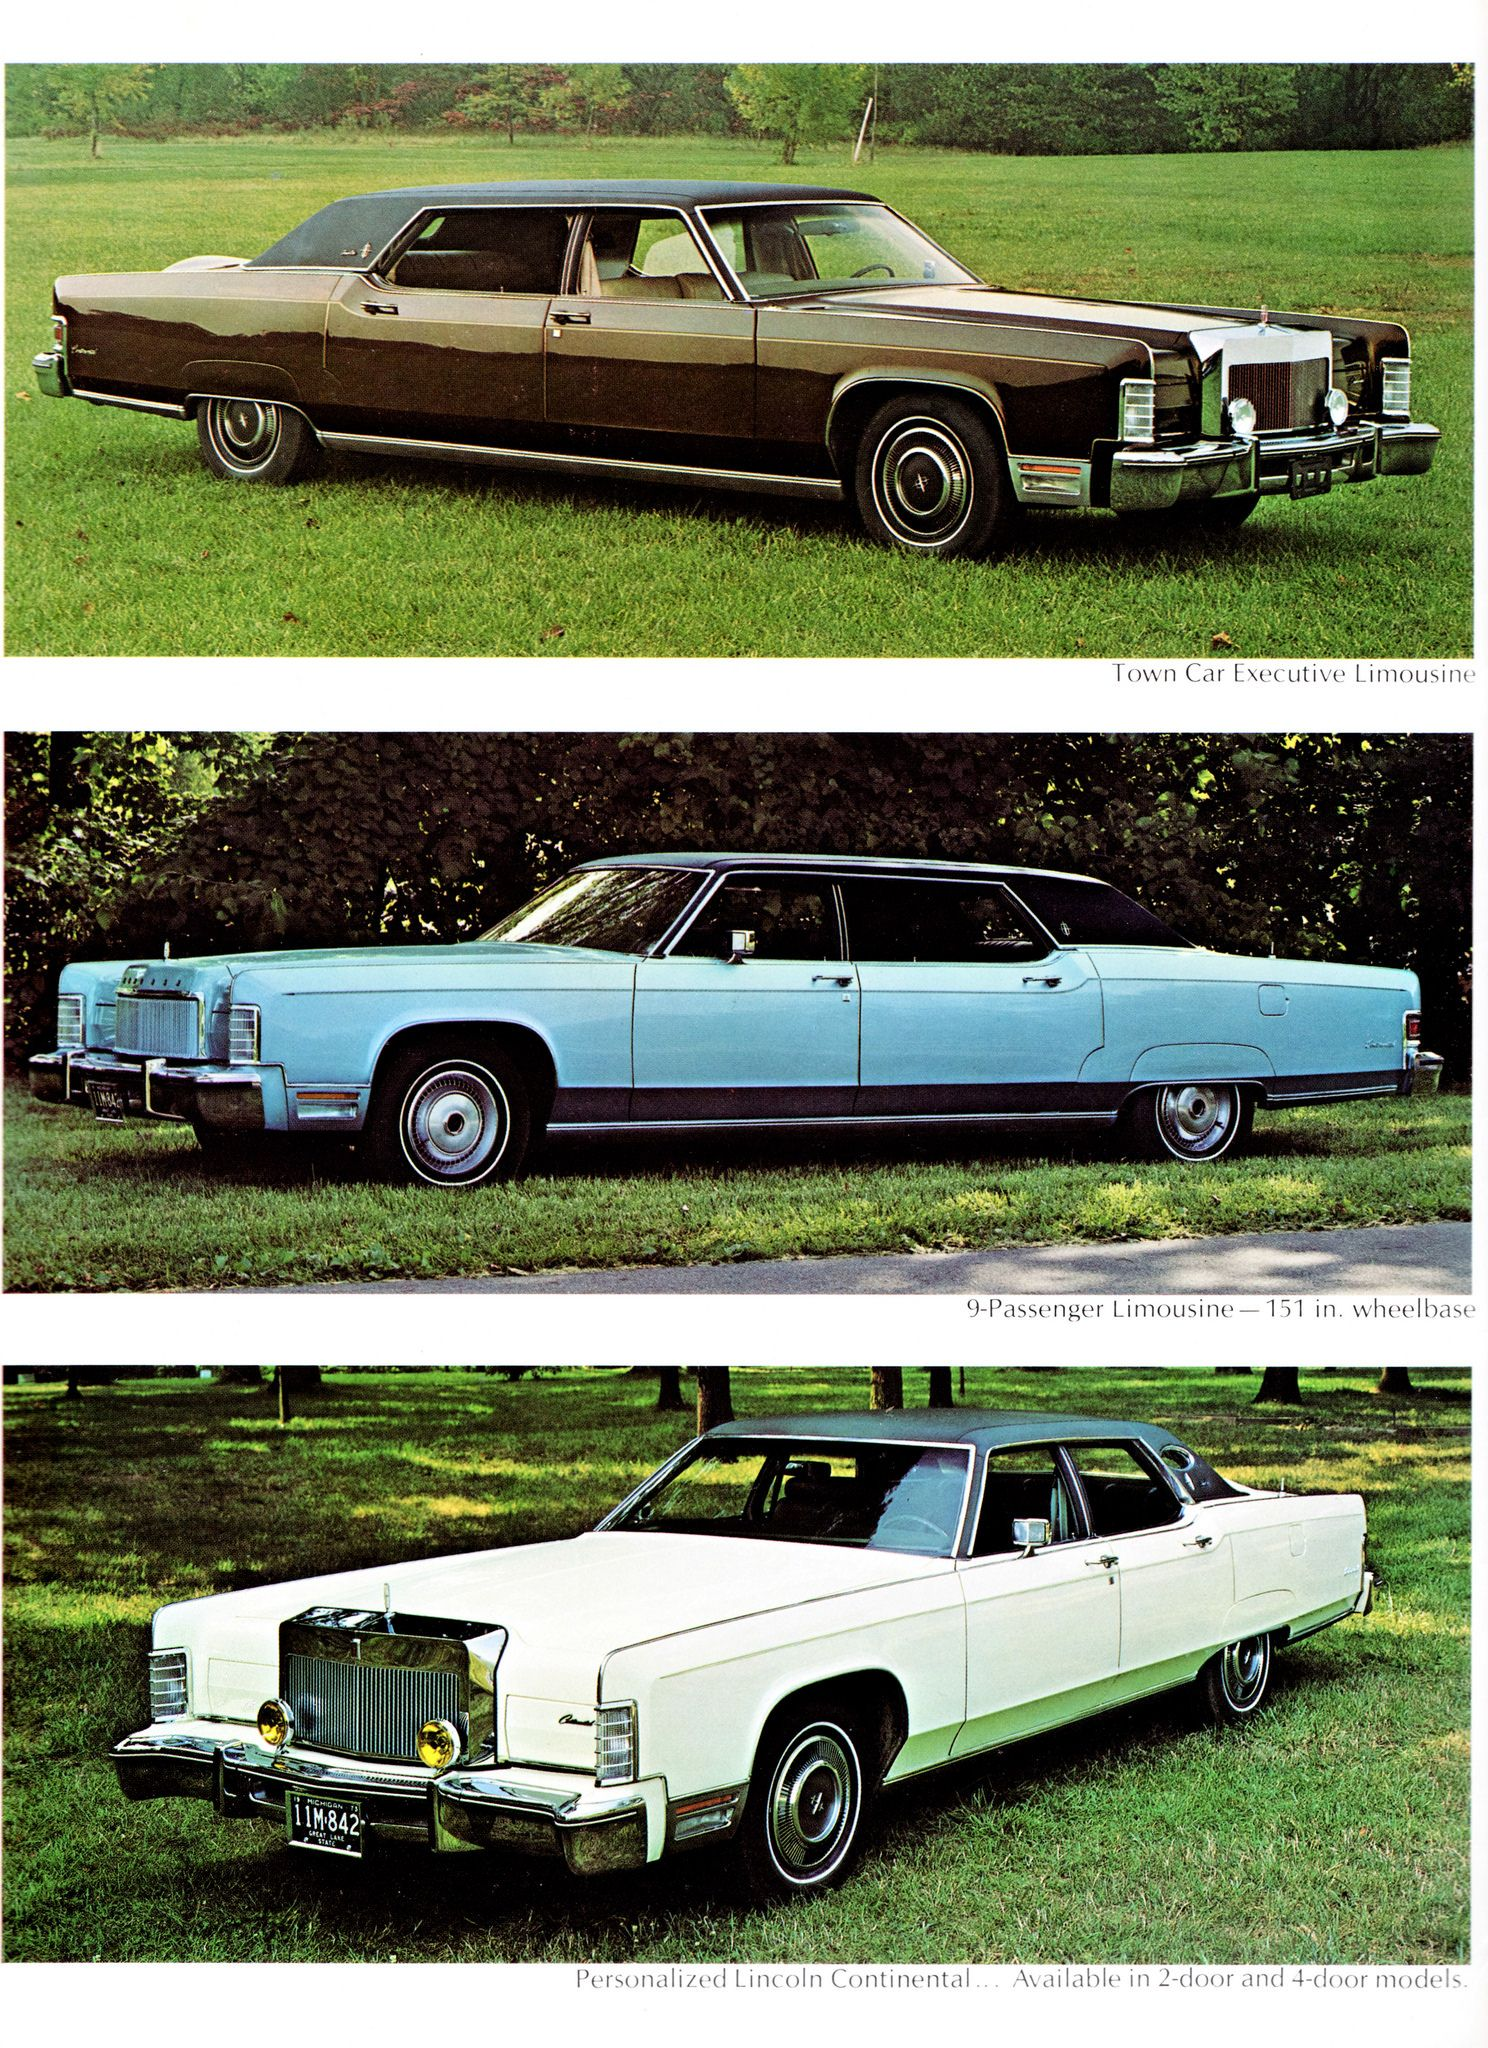 1974 Lincoln Continental Limousines Lincoln Continental Limousine